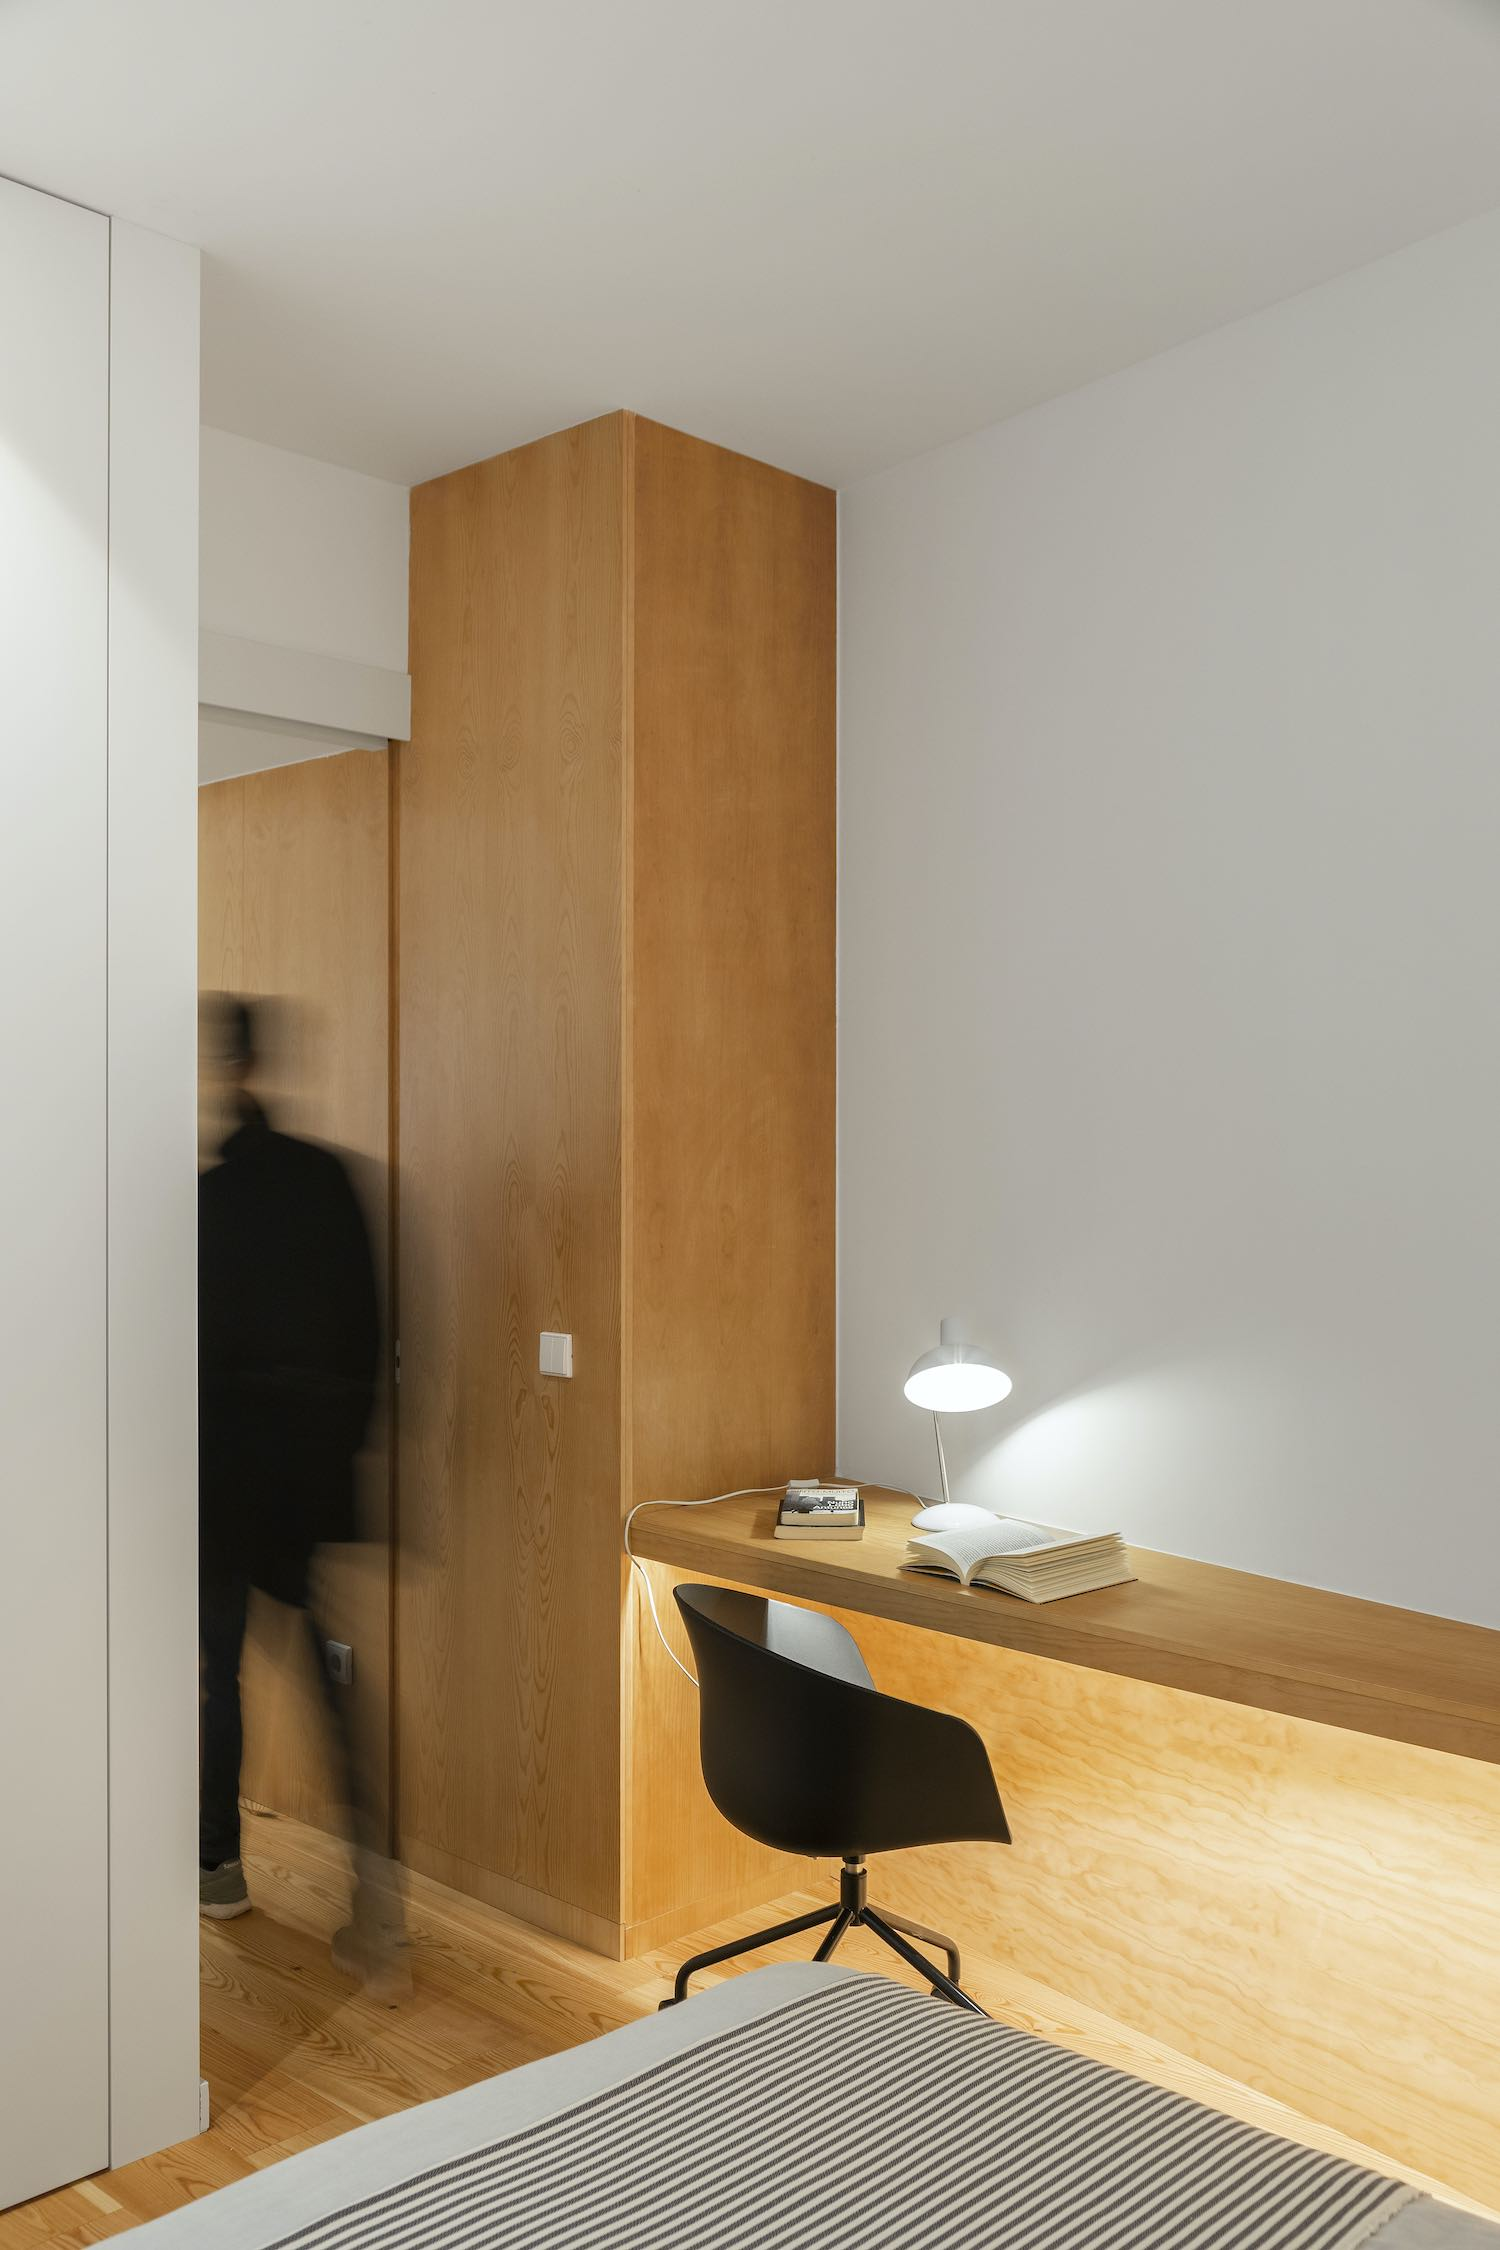 office desk with table lamp and chair